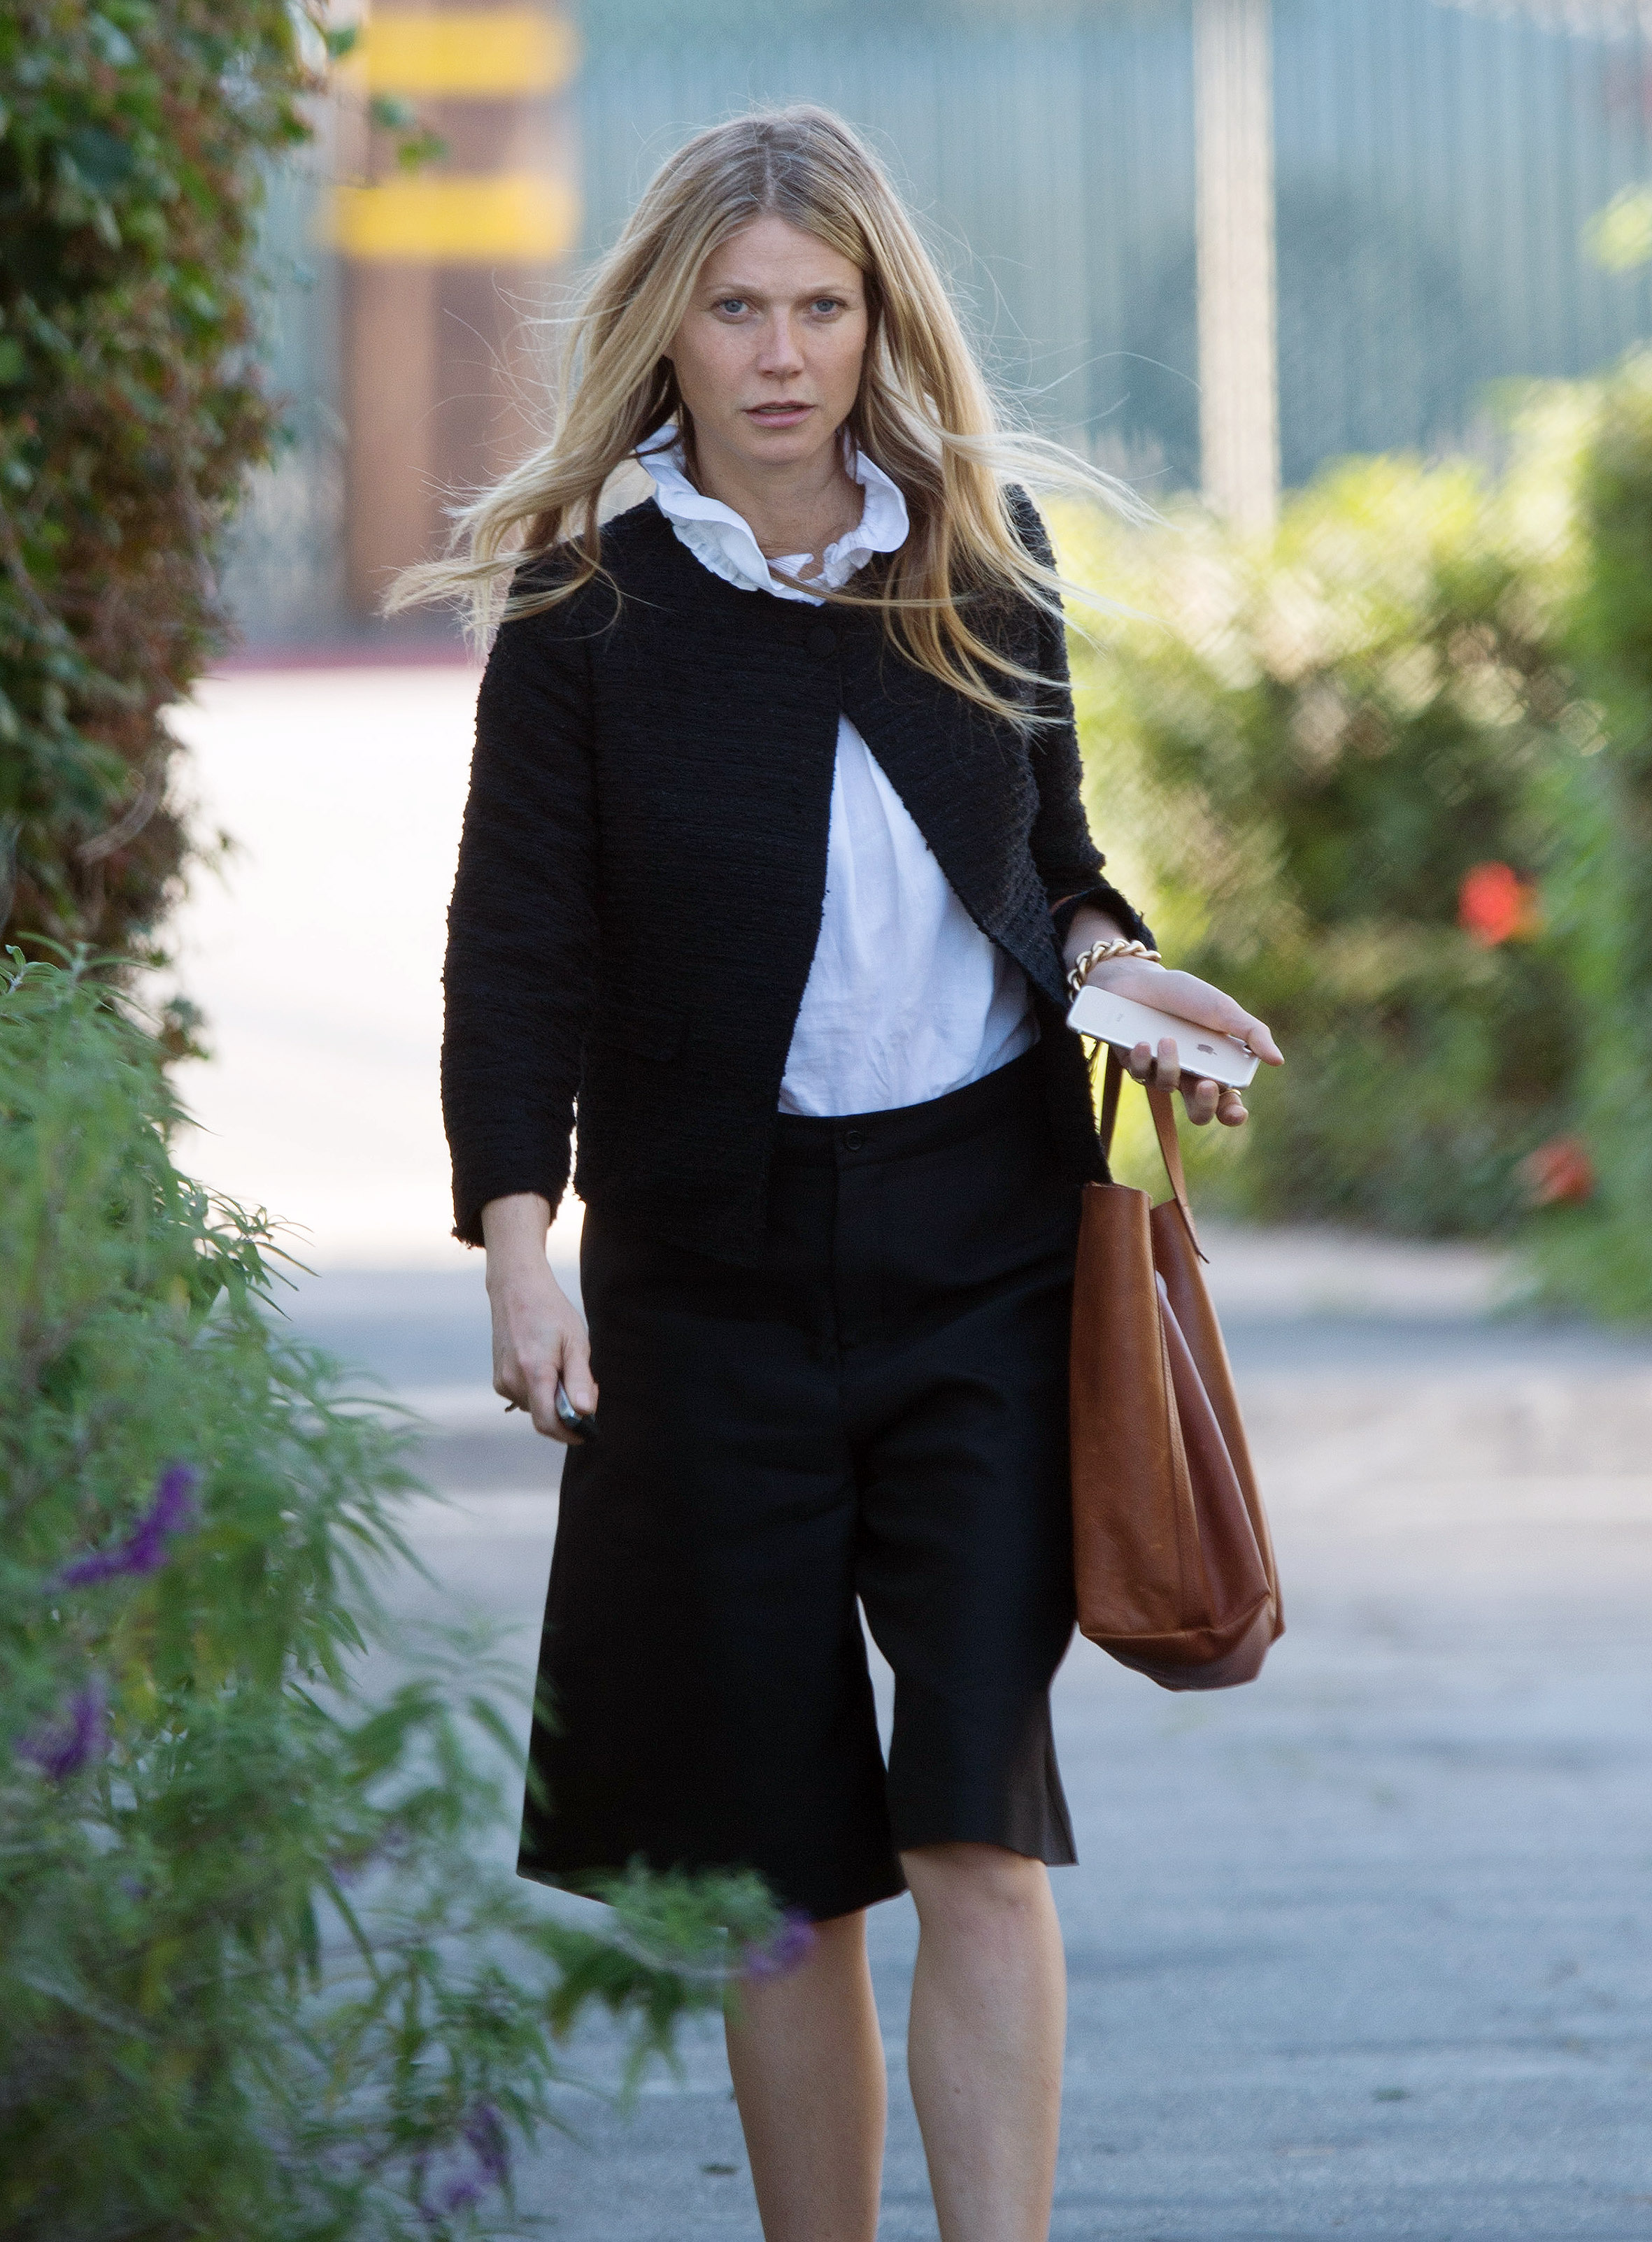 EXCLUSIVE Gwyneth Paltrow Looks Ready For Business In Petite Cardigan And Culottes